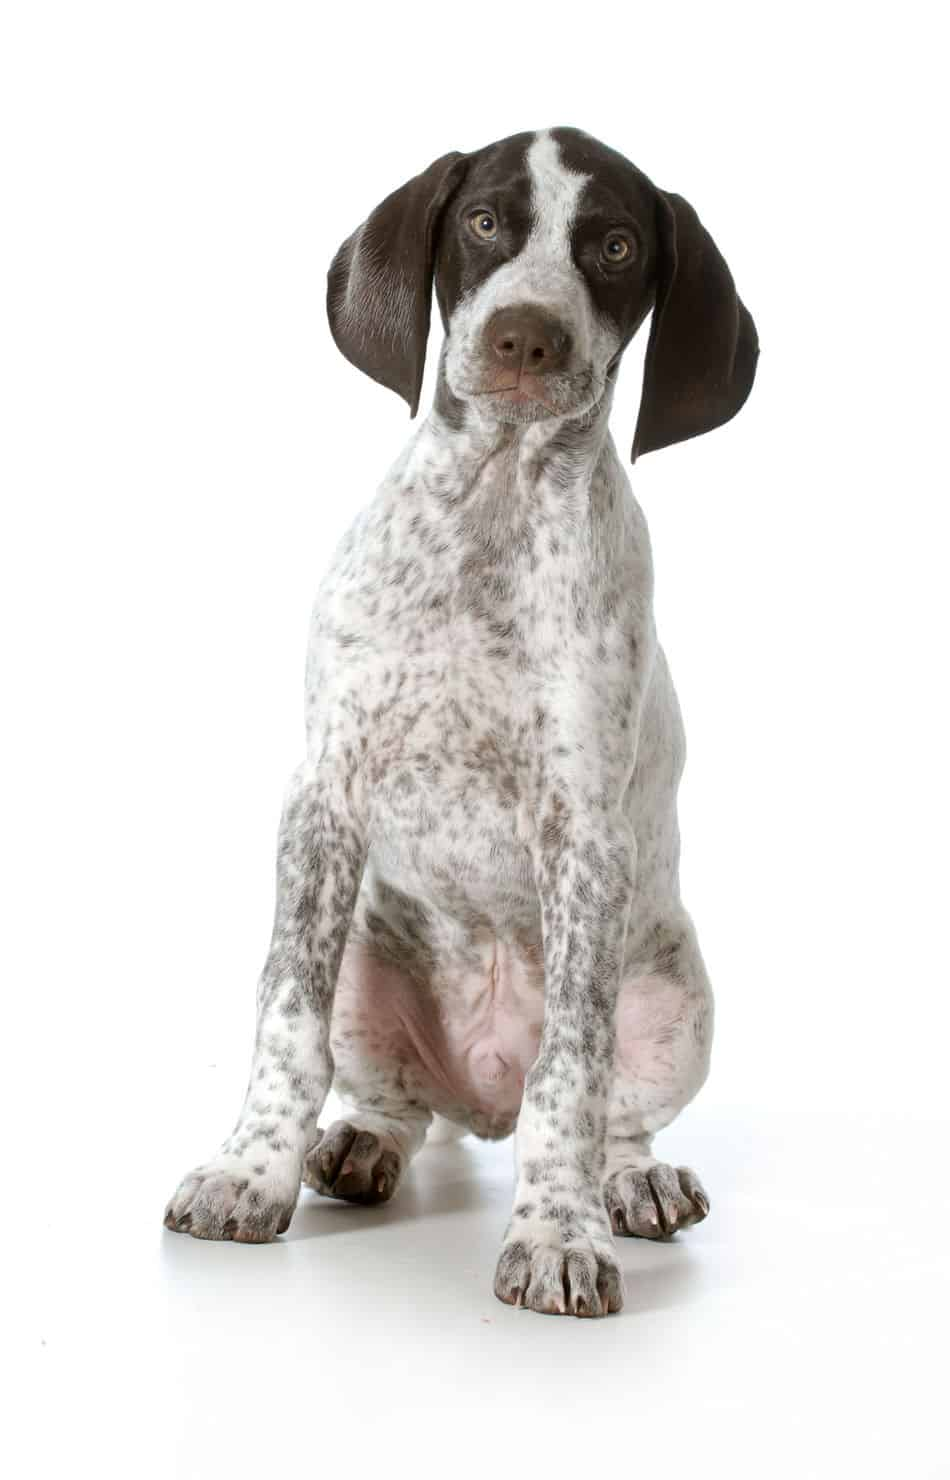 Are Pointer Puppies Good with Kids?